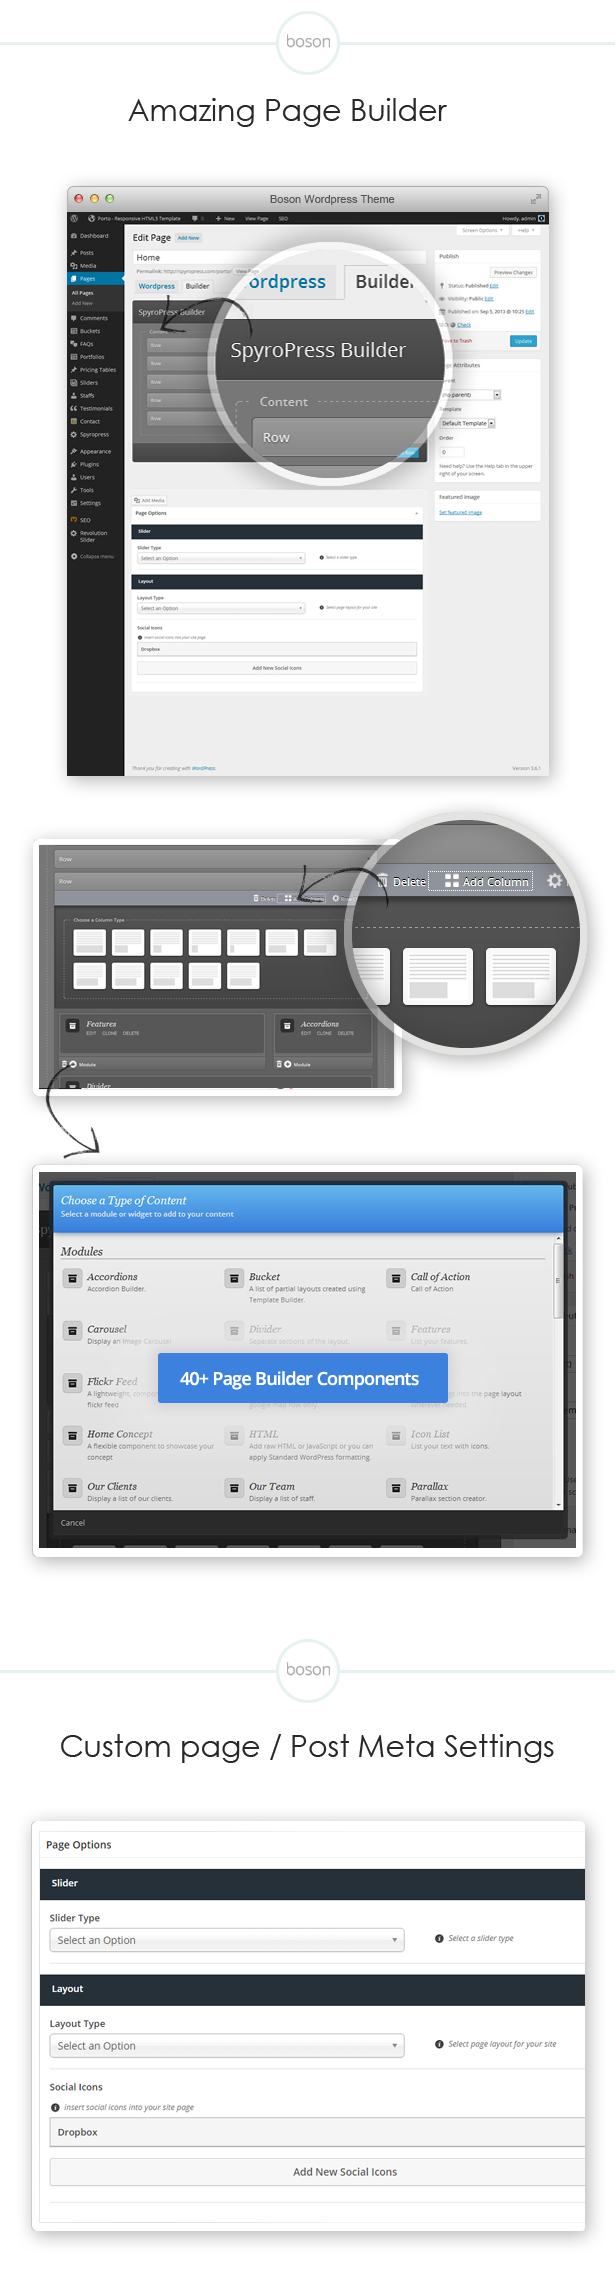 Awesome page builder options